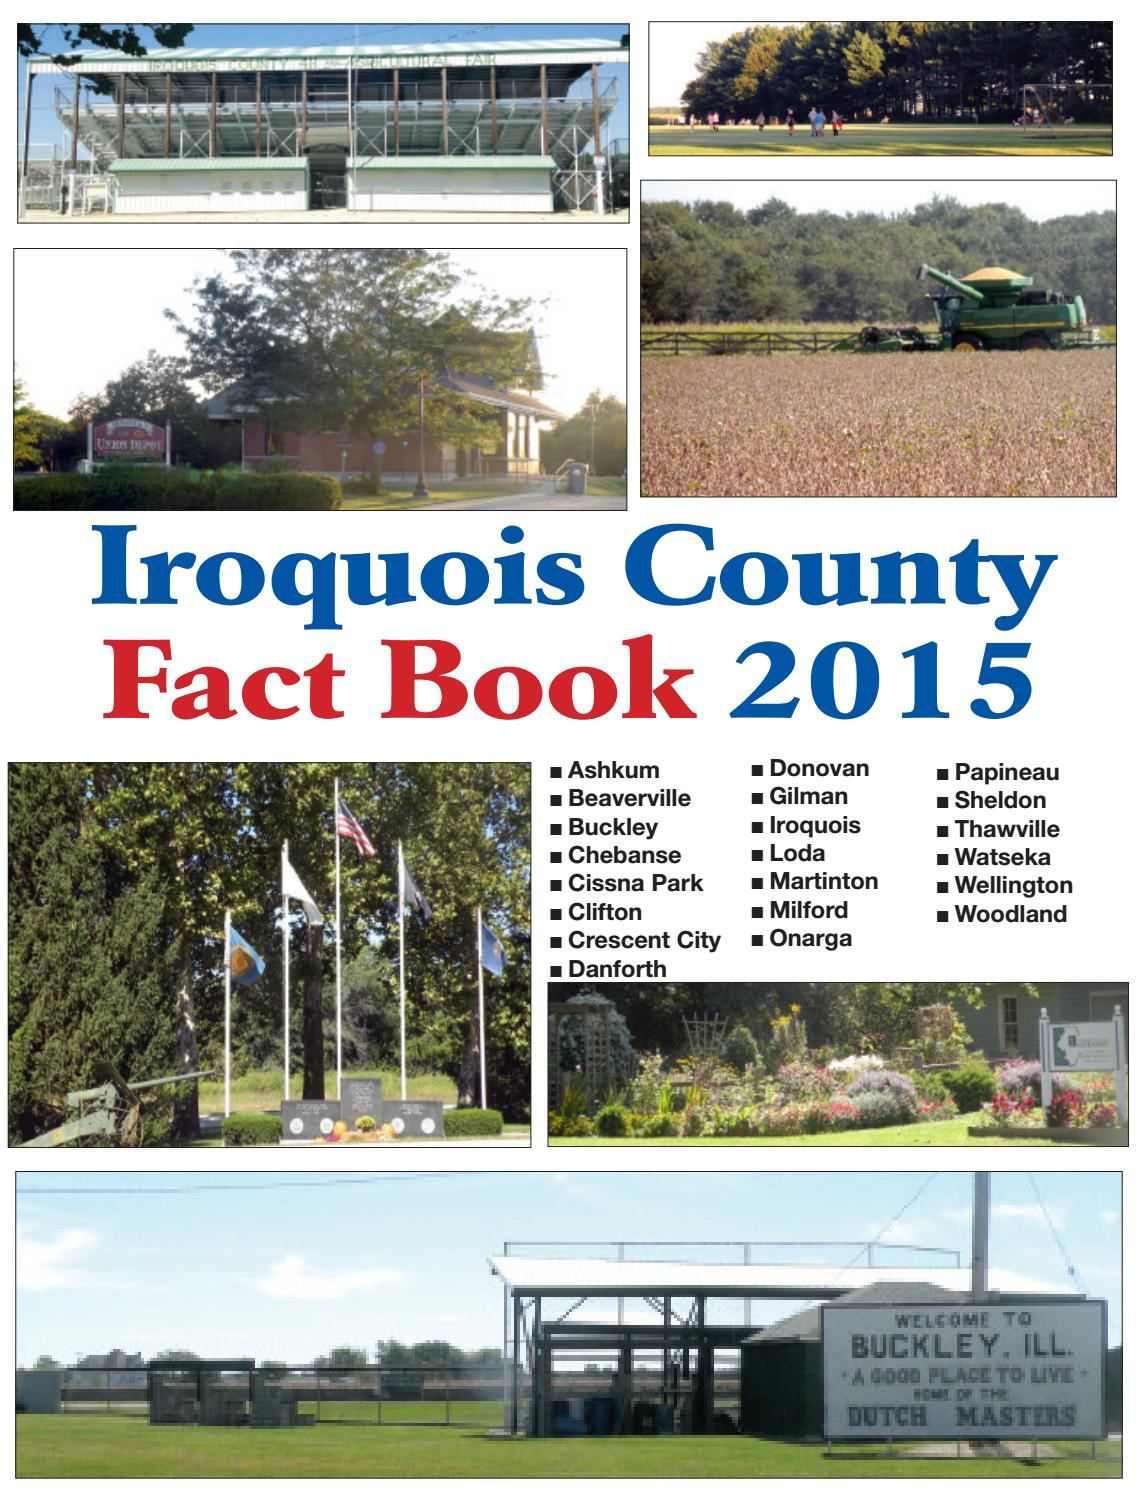 Illinois iroquois county loda - Iroquois County Fact Book 2015 By Times Republic Special Sections Issuu